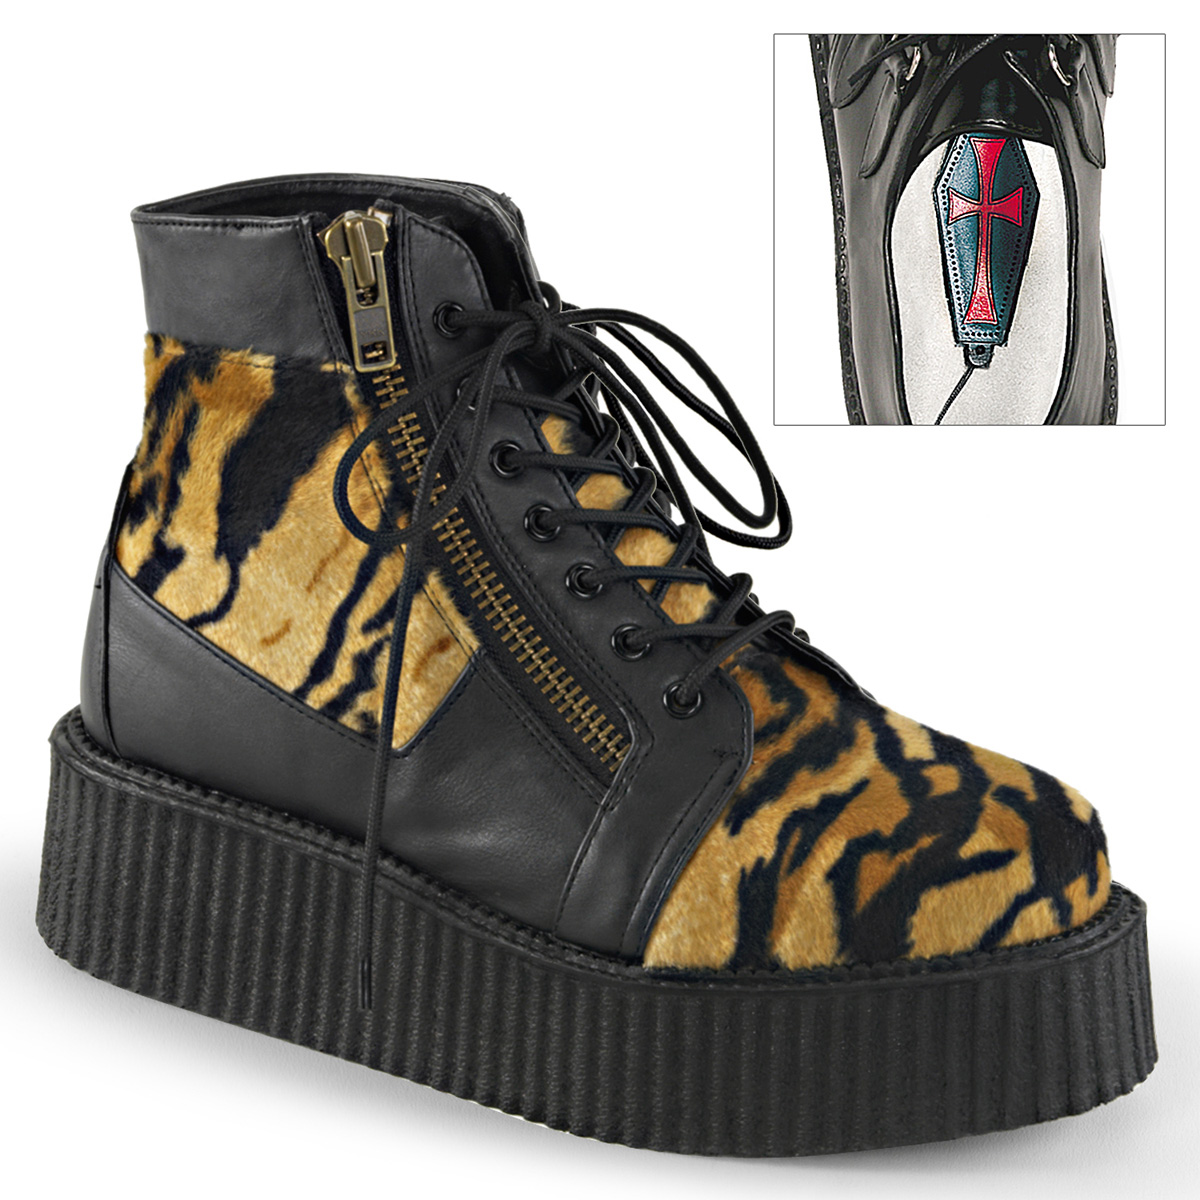 Demonia V Creeper 571 Ankle Boot 6 M Black Vegan Leather/tiger Print Faux  Fur. About this product. 1 watching. Picture 1 of 2; Picture 2 of 2